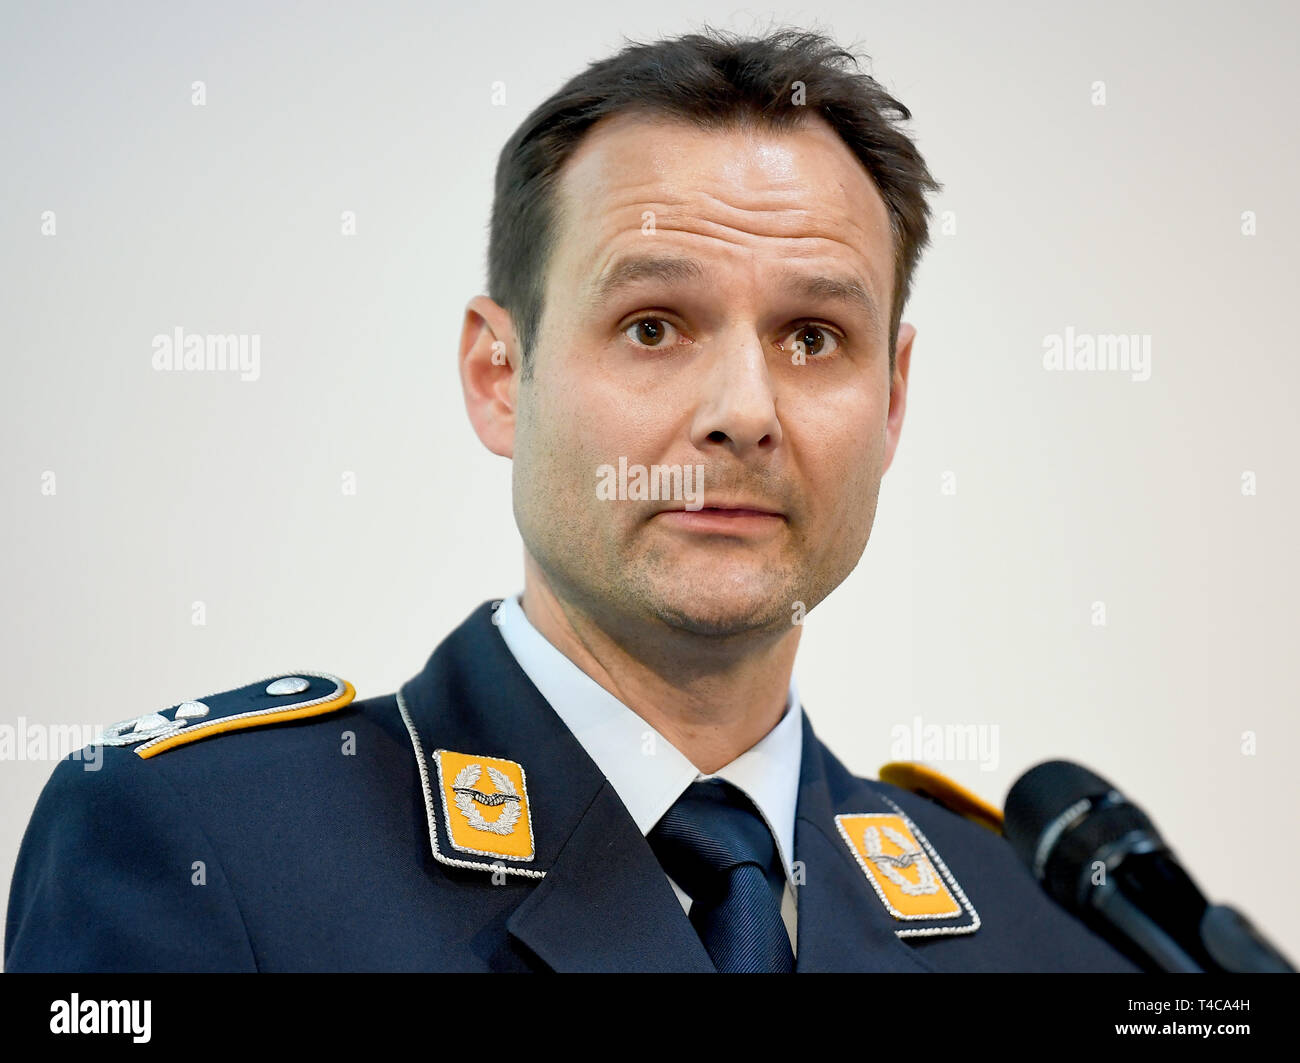 Berlin, Germany. 16th Apr, 2019. Stefan Schipke, commander of the flying group of the Flugbereitschaft BMVg (Air Force), speaks at a press conference about the emergency landing of a Global 5000 of the Flugbereitschaft. The crew survived the incident without any physical damage, Schipke said at the airport. Two pilots and a flight attendant had been on board. Credit: Britta Pedersen/dpa-Zentralbild/dpa/Alamy Live News - Stock Image